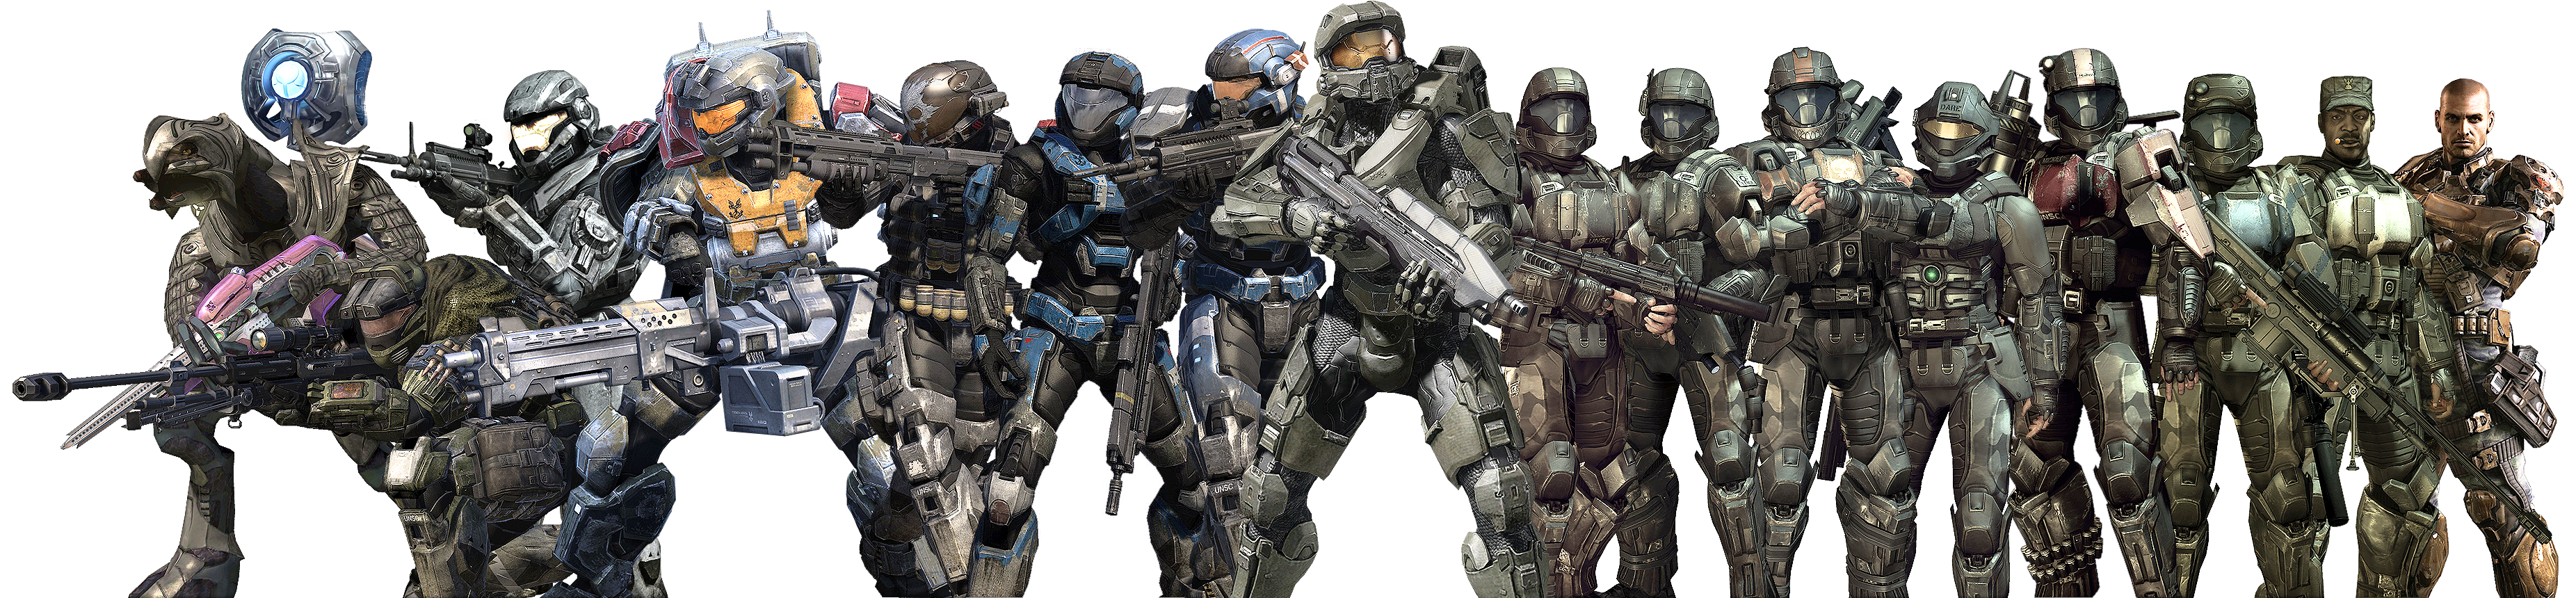 Halo - Heroes Group RENDER 2 - BIG by Crussong